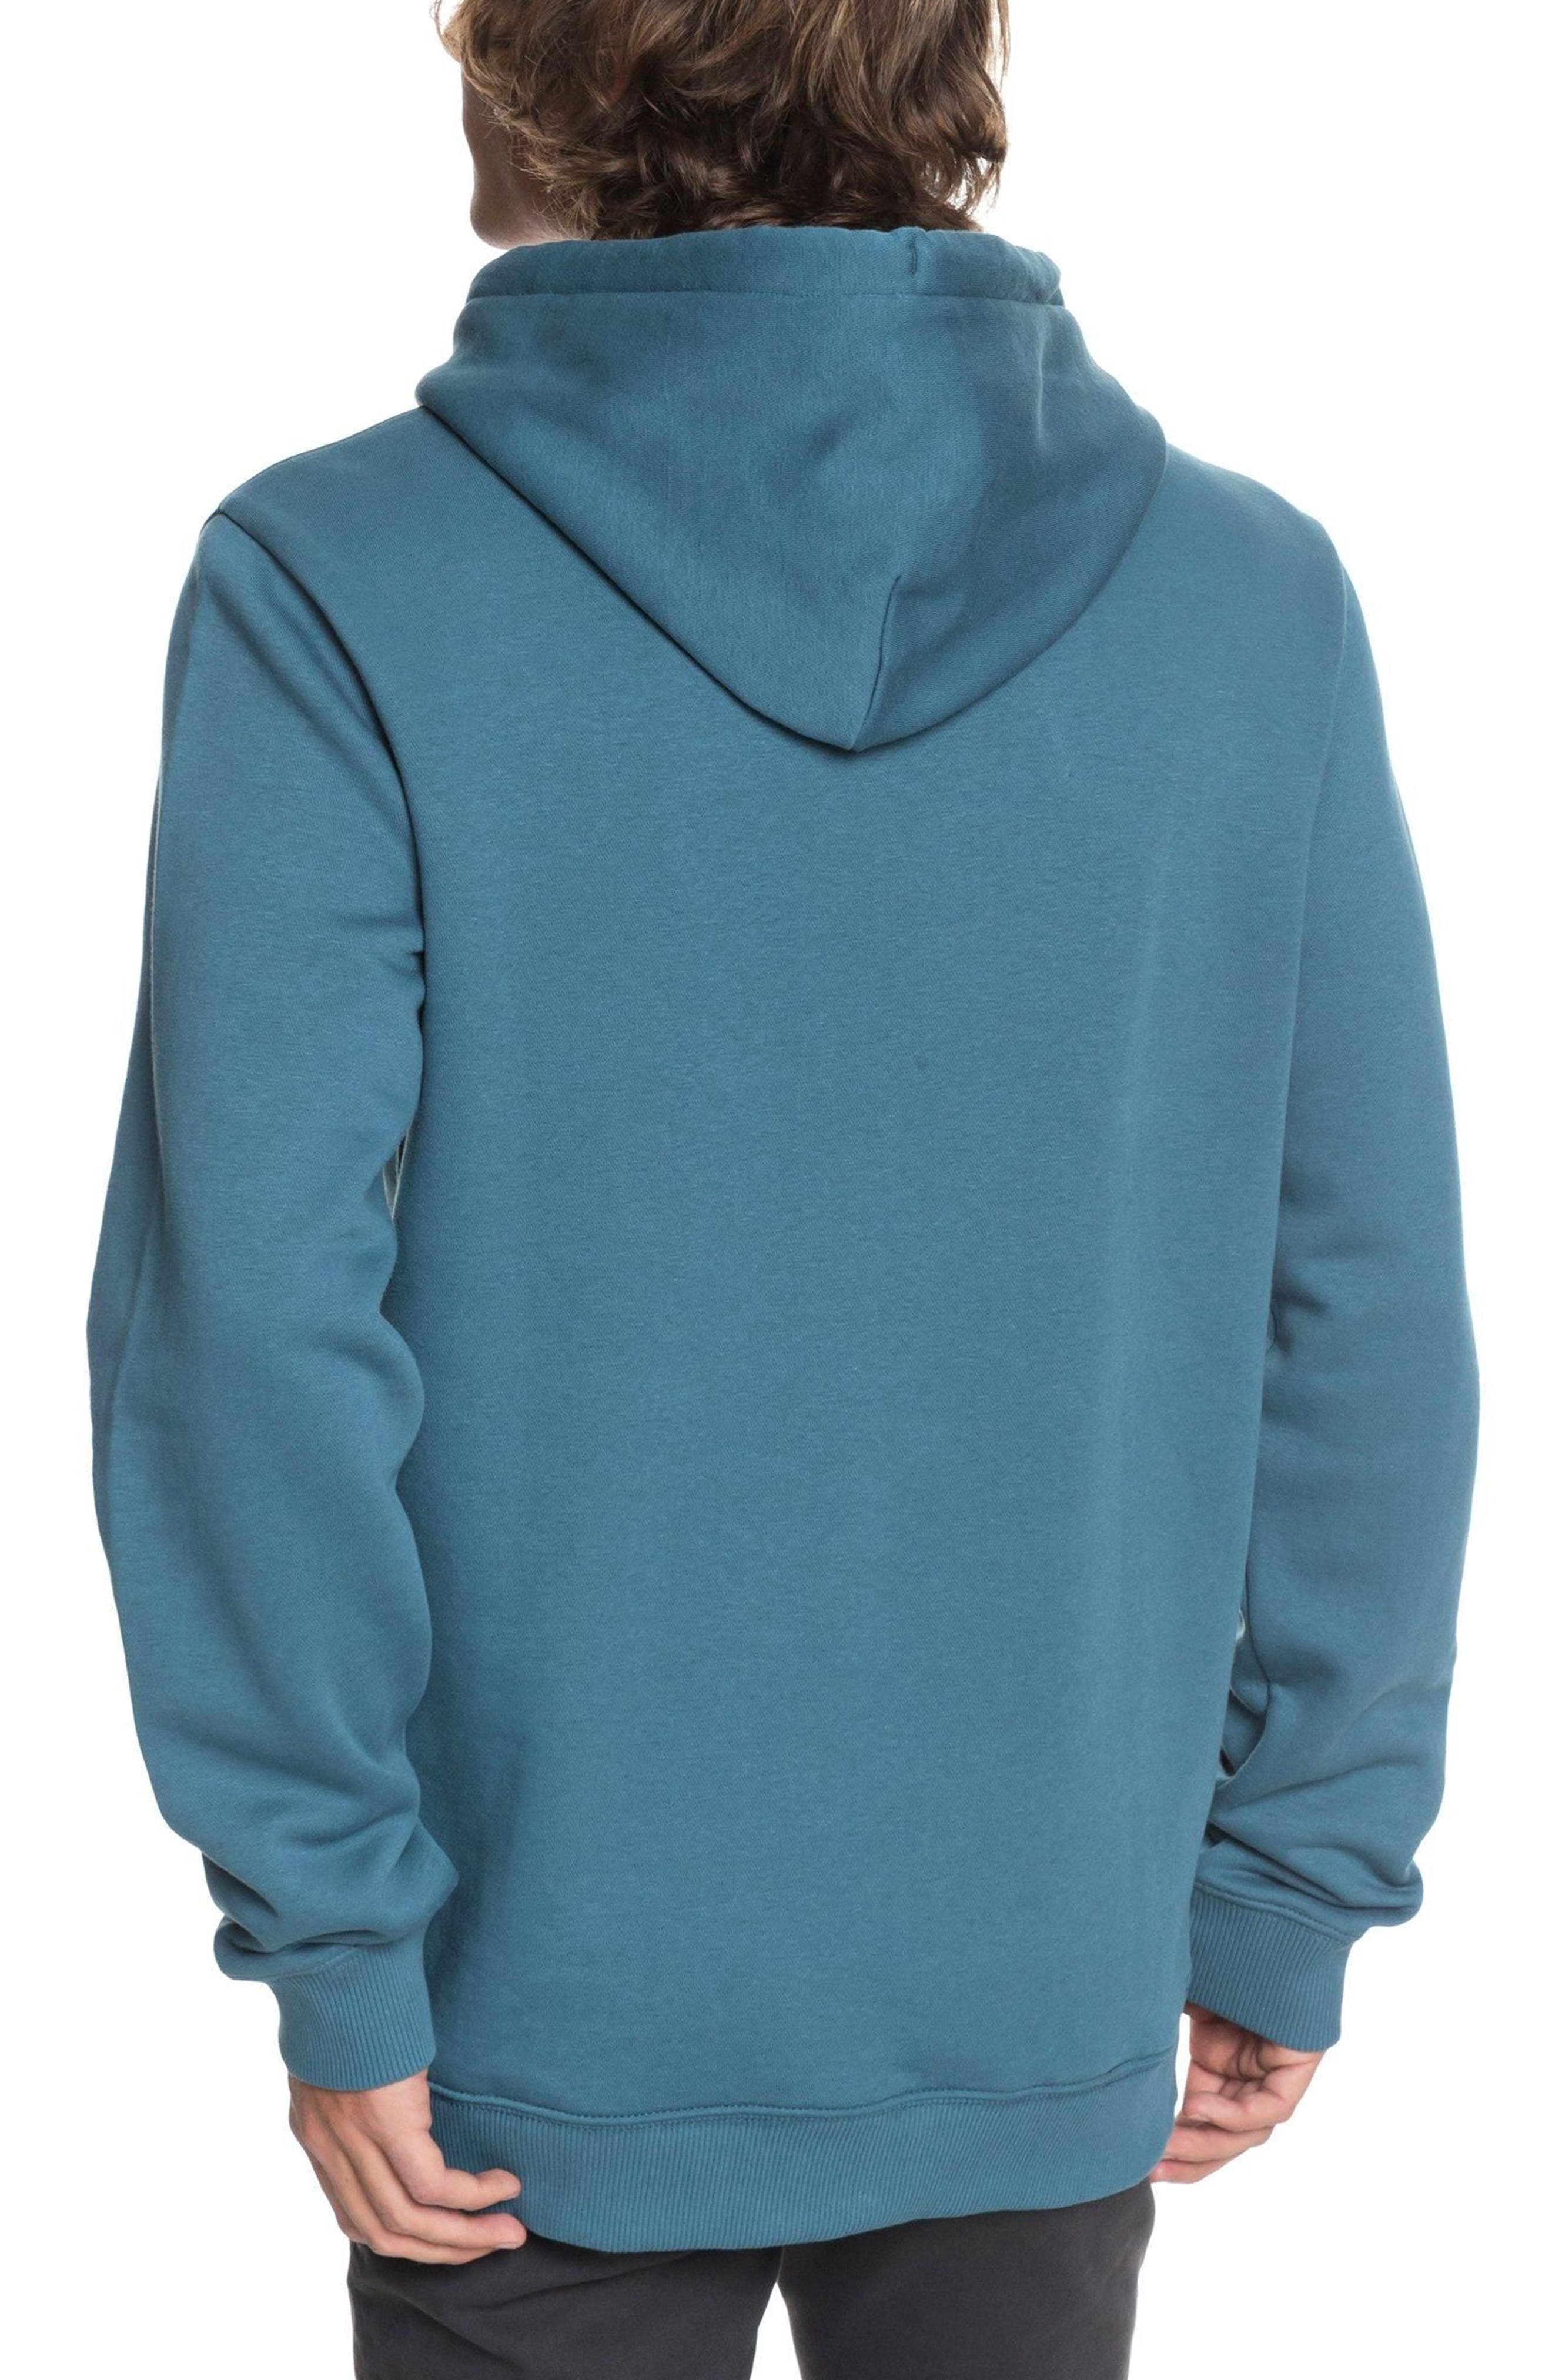 Twin Fin Mates Hoodie,                             Alternate thumbnail 2, color,                             Real Teal